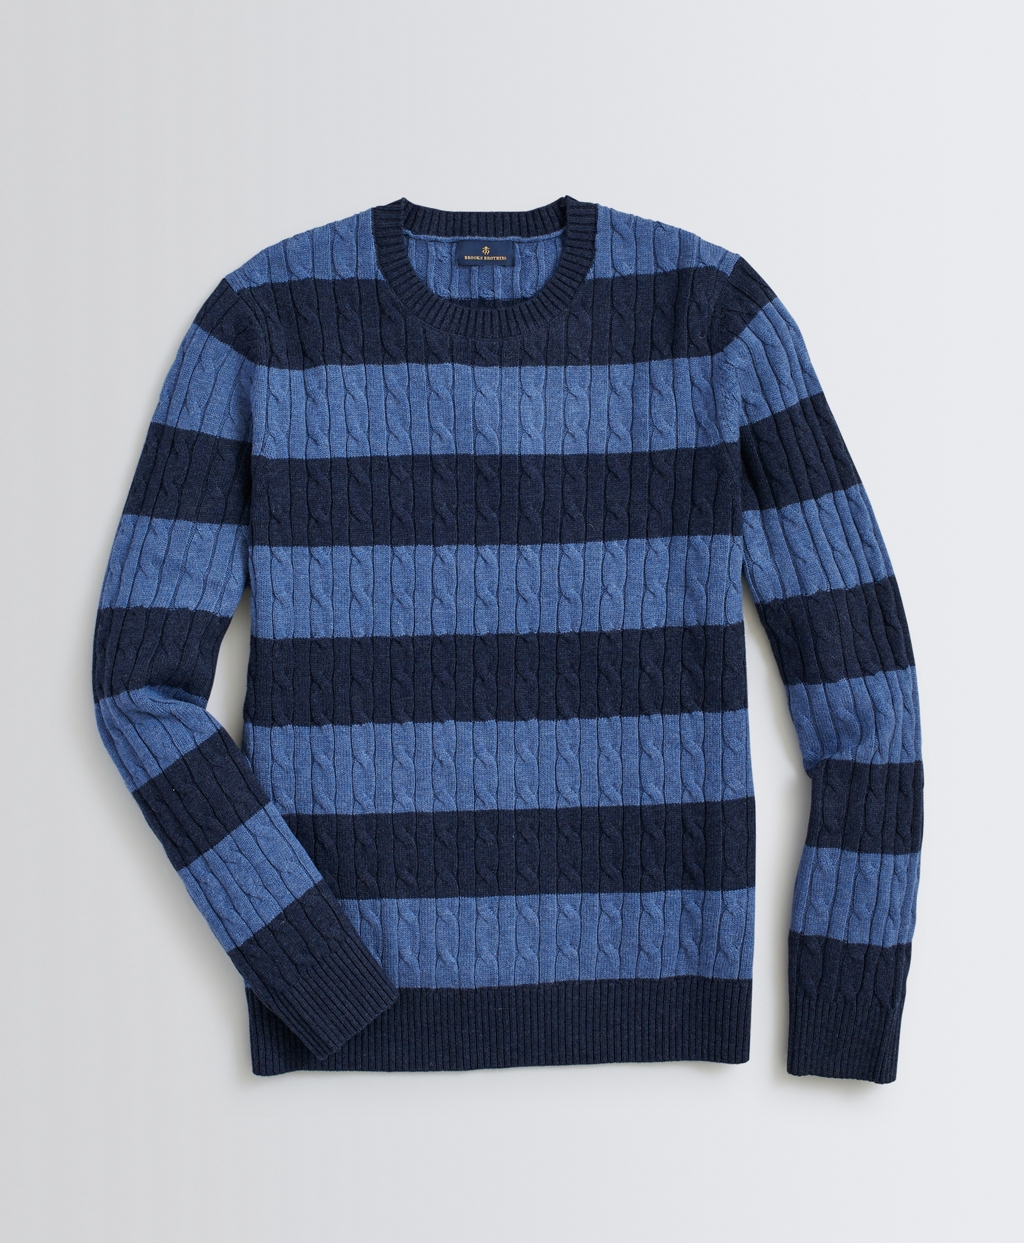 Edwardian Men's Fashion & Clothing 1900-1910s Brooks Brothers Mens Striped Wool-Cotton Sweater $149.50 AT vintagedancer.com